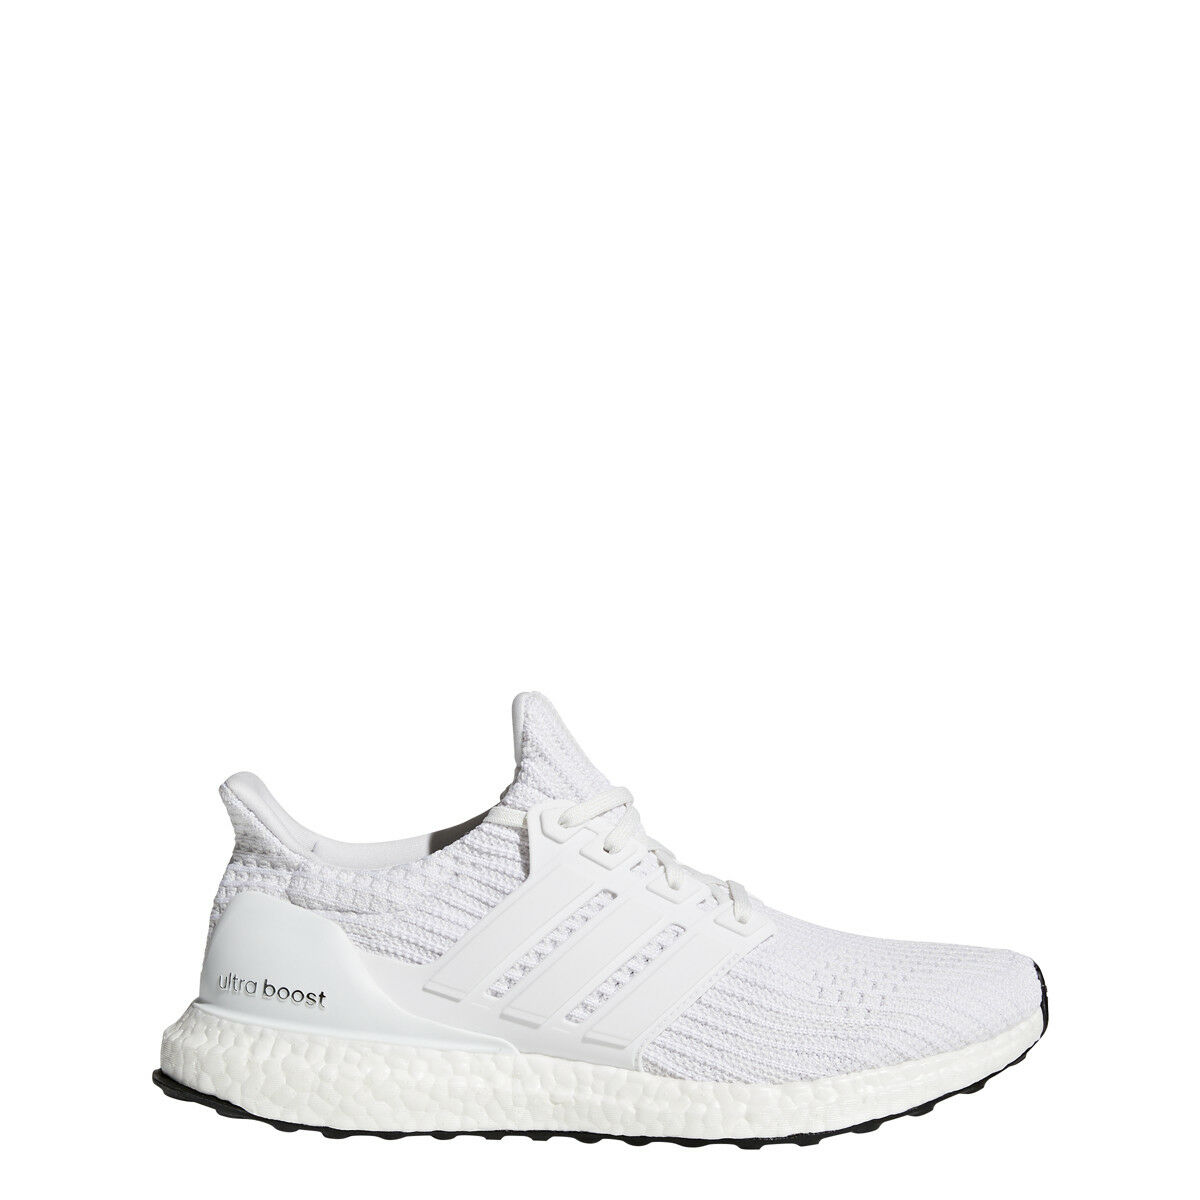 Authentic Men's Adidas UltraBoost 4.0 Running shoes White Ultra Boost - BB6168